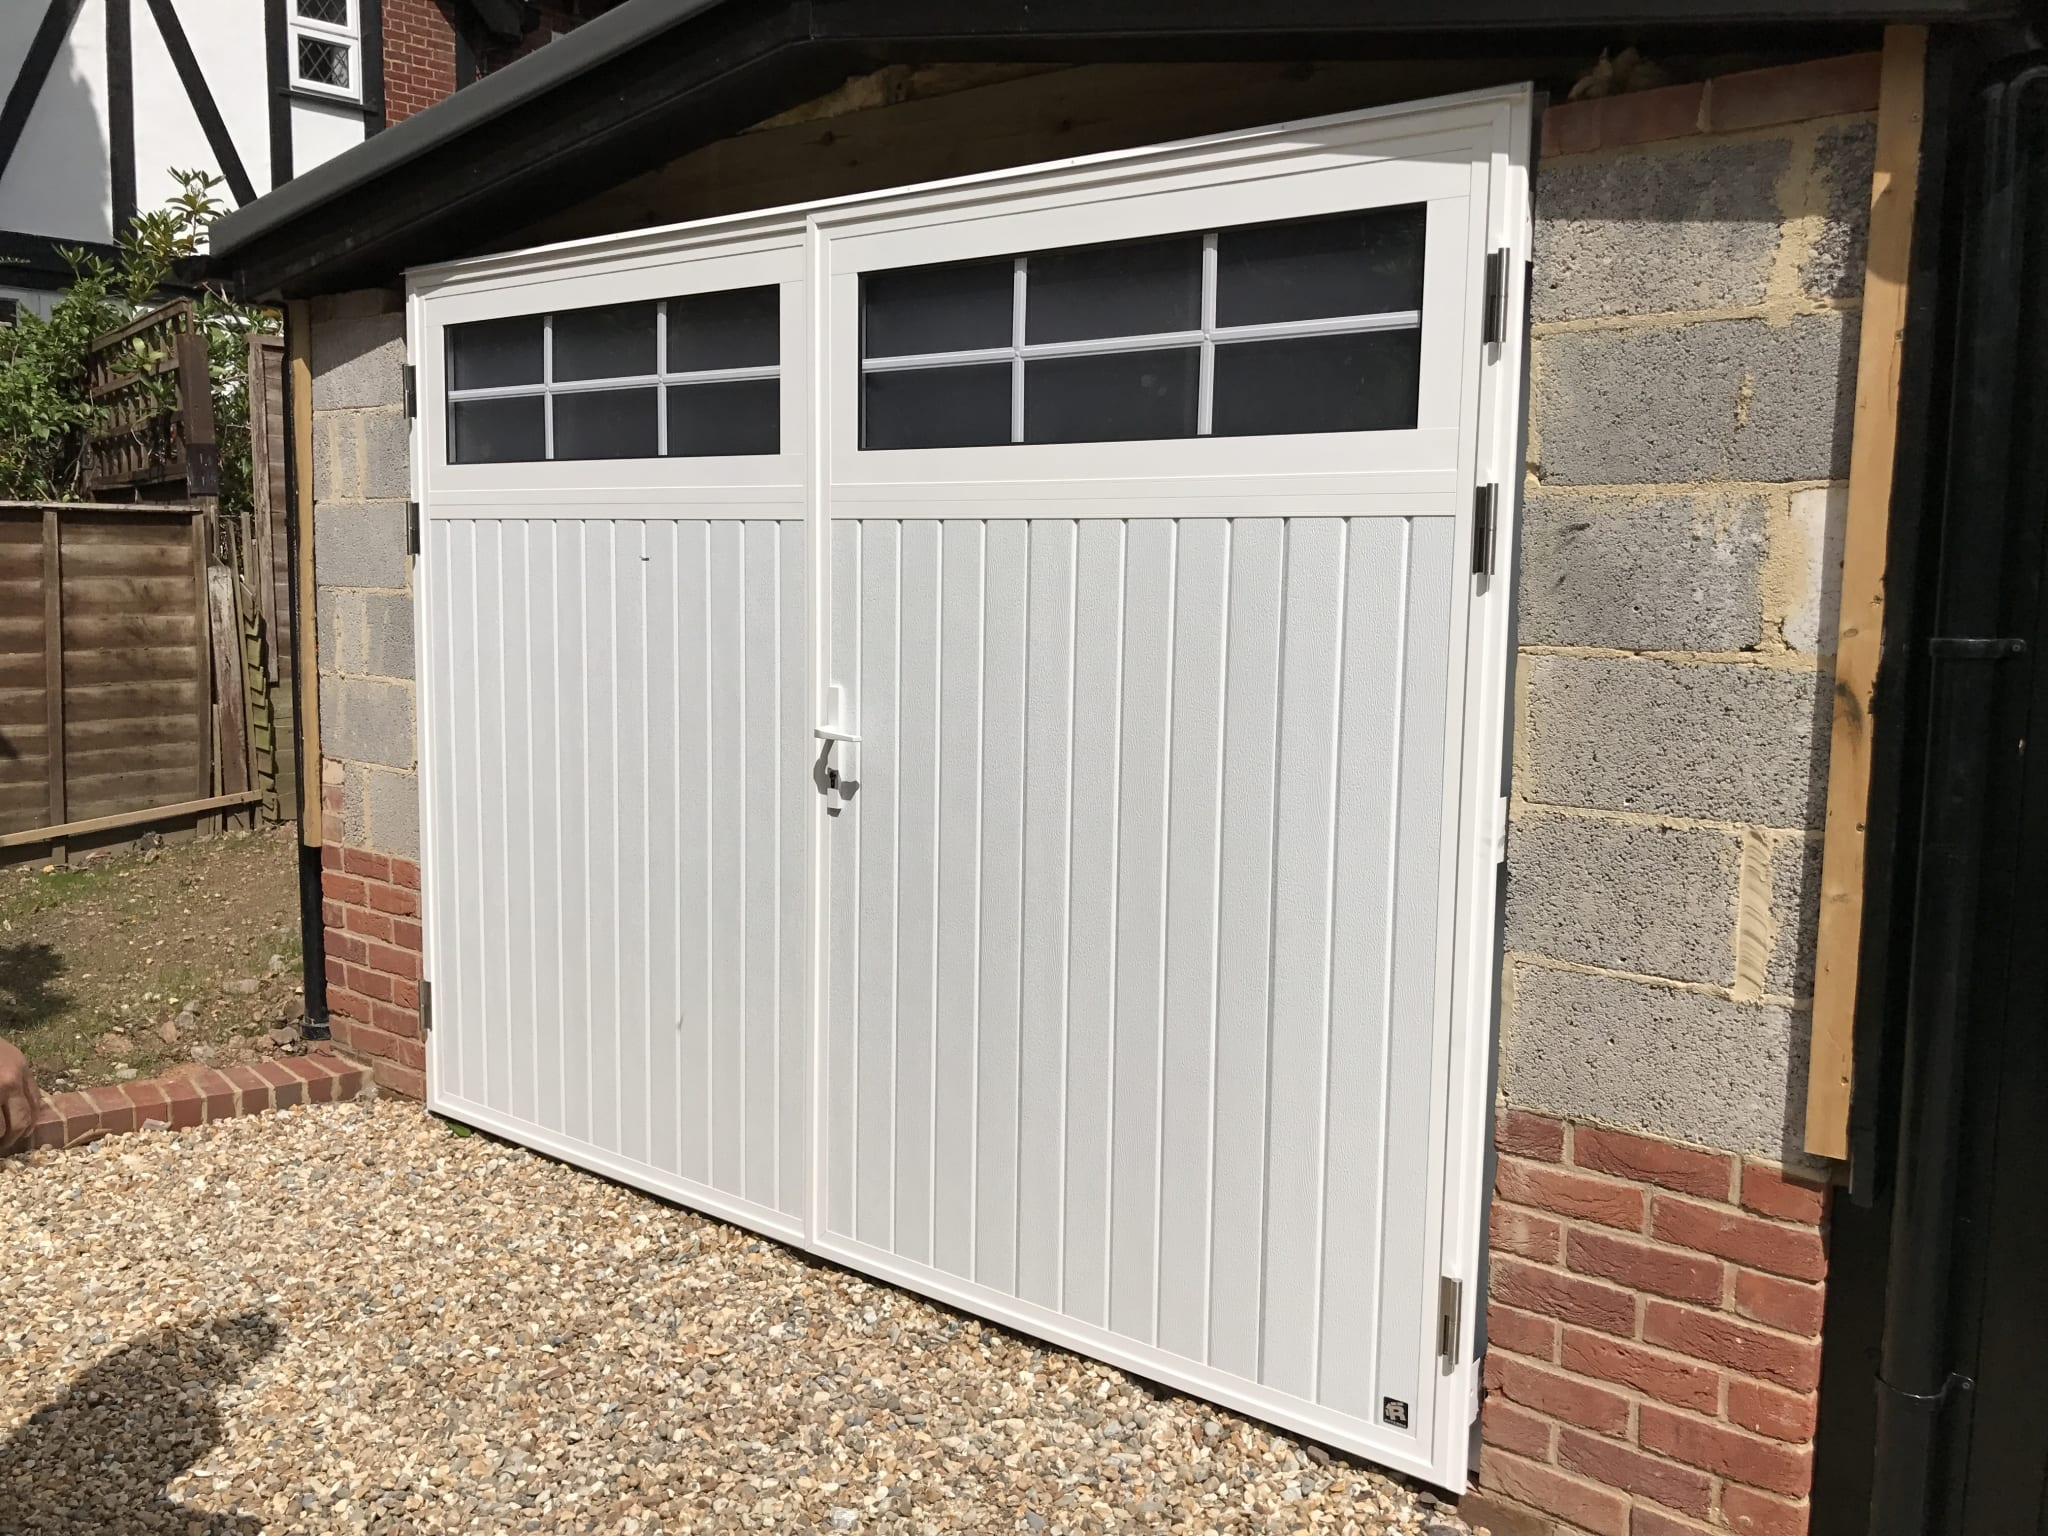 Seceuroglide insulated sectional garage door georgian cassette - Ryterna Traditional Vertical Side Hinged Garage Doors